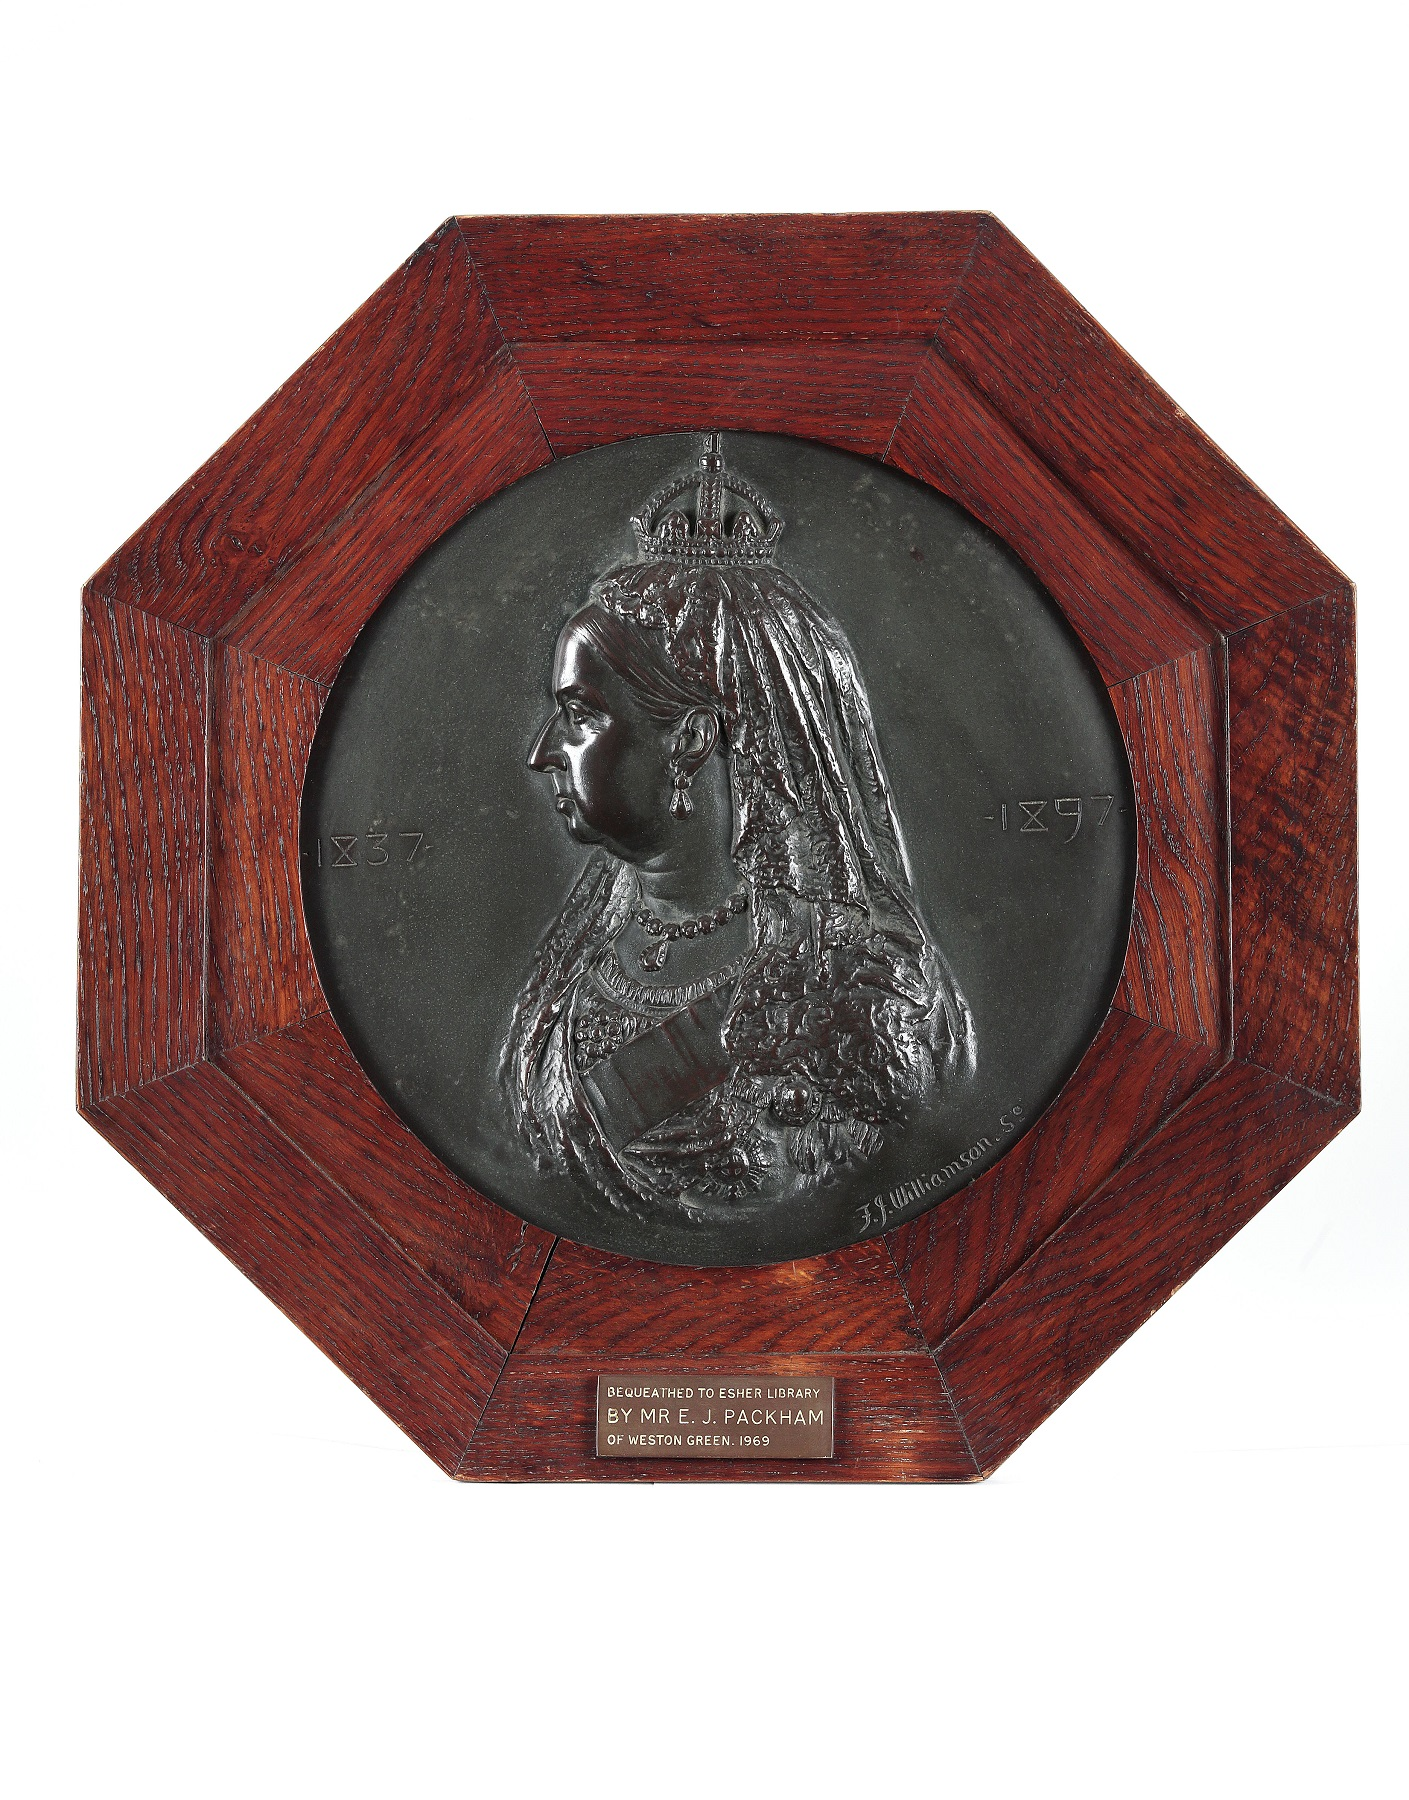 Bronze of Queen Victoria to commemorate her Diamond Jubilee, made in 1897 by F.J. Williamson.